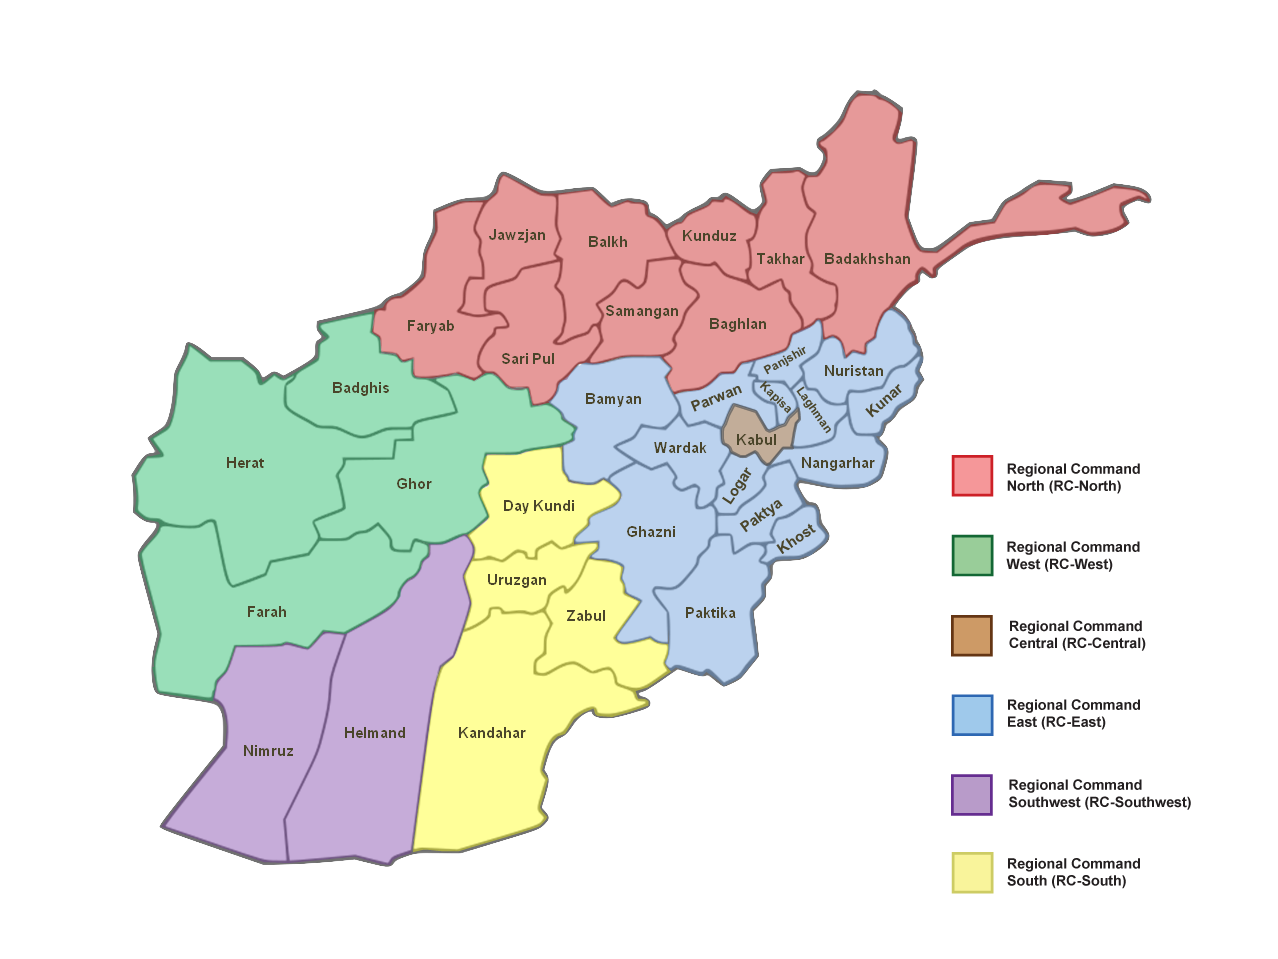 FileAfghanistan Regional Commands With Provincespng Wikimedia - Afghanistan map